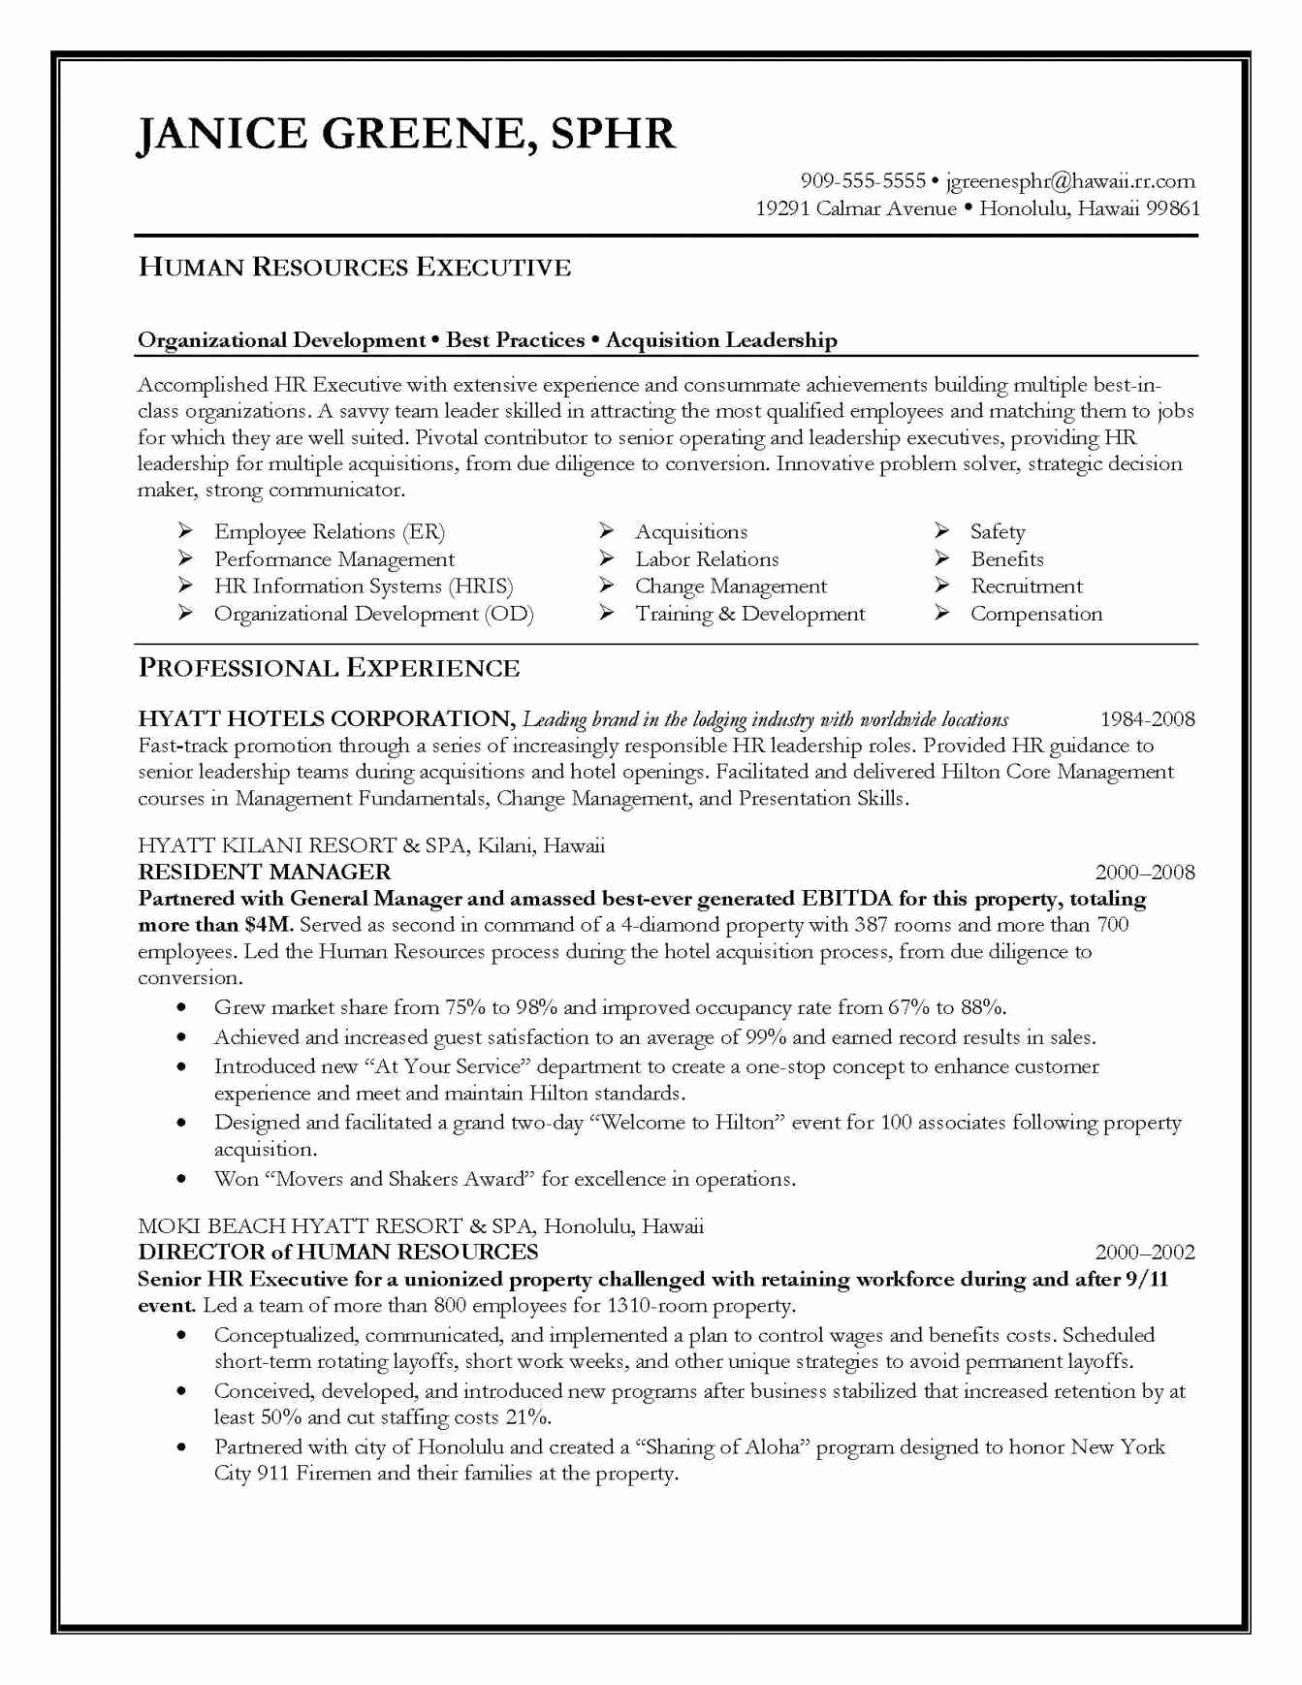 Career Change Resume - Career Change Resume Sample Awesome Resume Objective Statement Entry